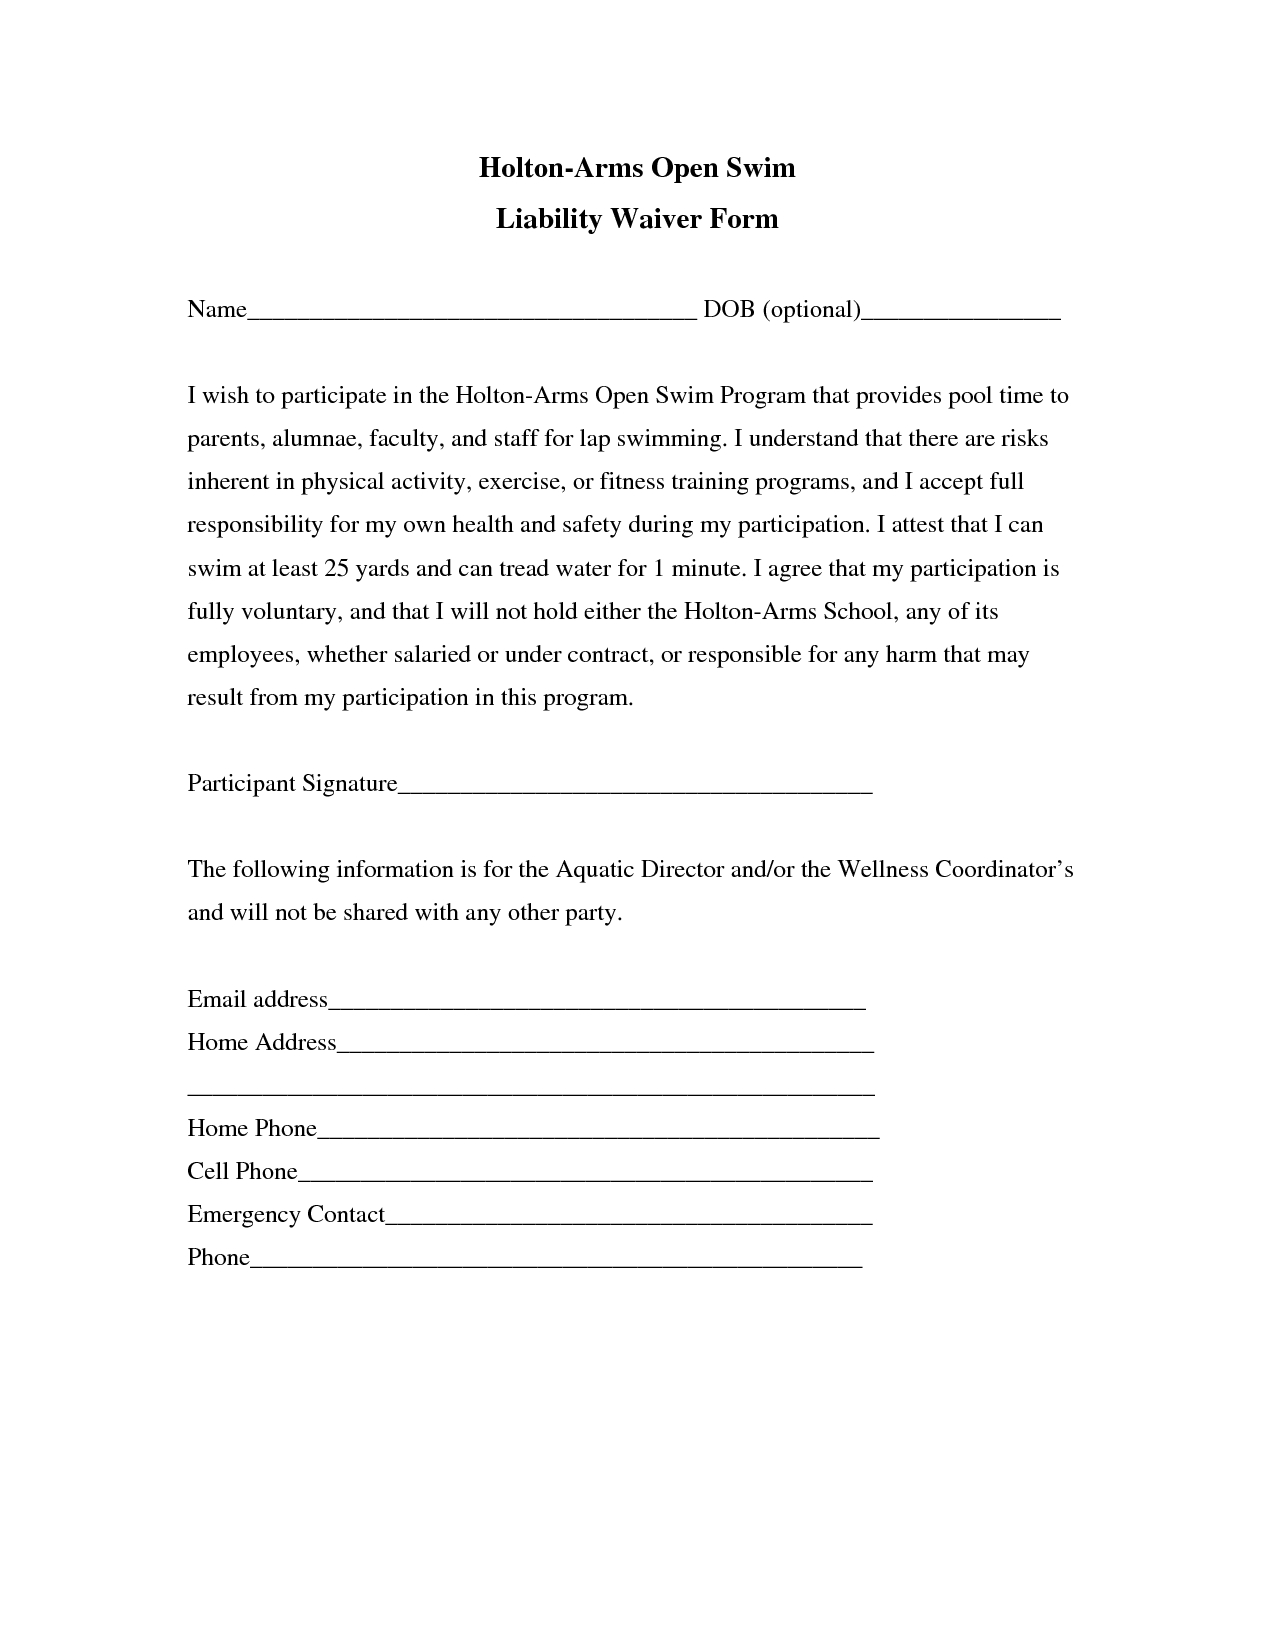 Liability Insurance: Liability Insurance Waiver Template - Liability - Free Printable Photo Release Form